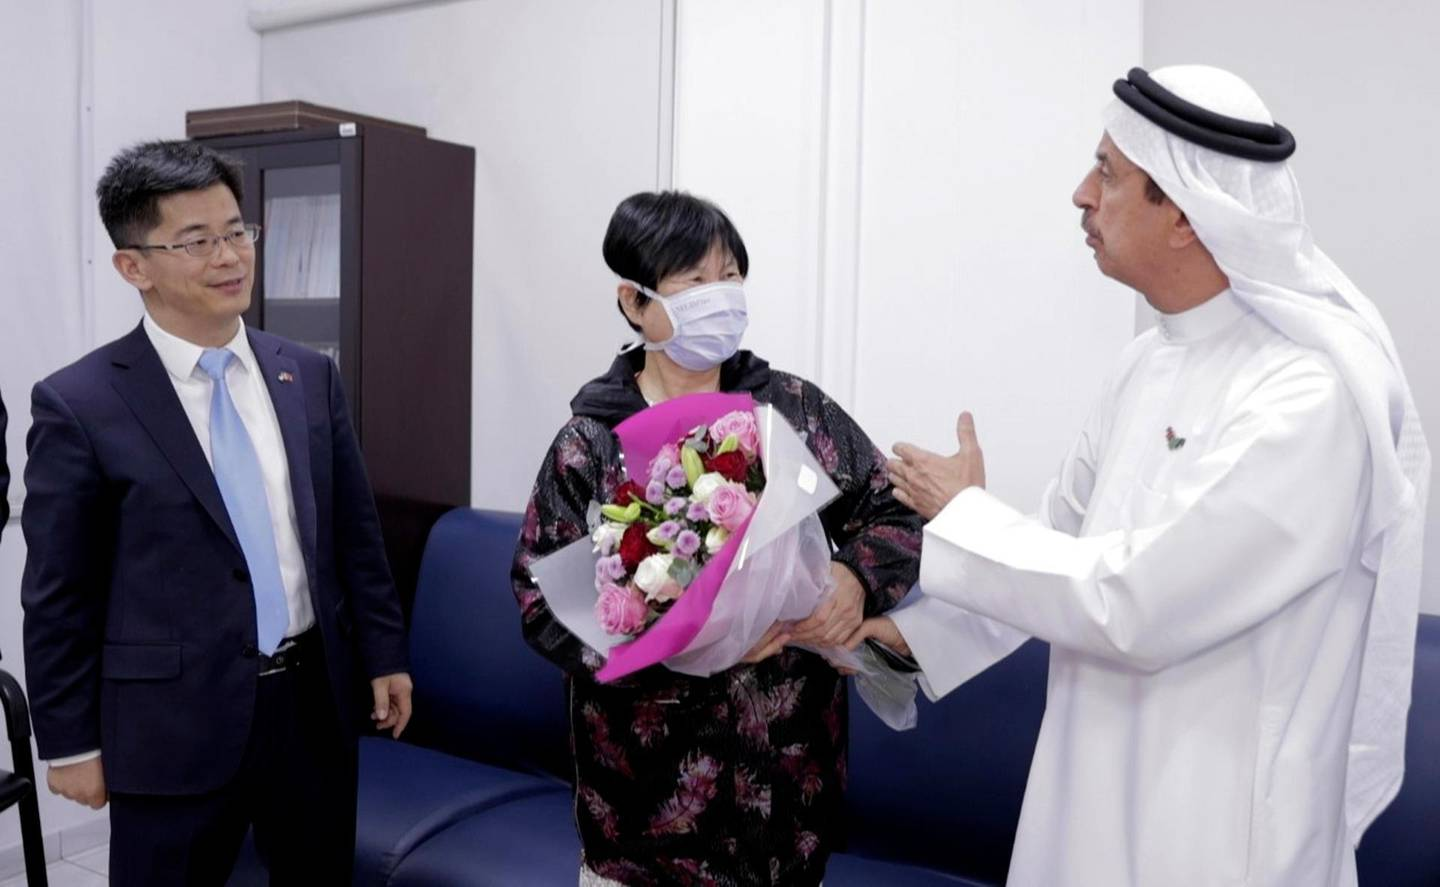 """Liu Yujia, center, receives a bouquet of flowers from Dr. Hussein Al Rand, an under-secretary at the Ministry of Health, after she tested negative for the Coronavirus, as Consul General Li Xuhang of China looks on, in Abu Dhabi, United Arab Emirates, Sunday, Feb. 9, 2020. The state-run WAM news agency announced Sunday night that 73-year-old Chinese national Liu Yujia, one of the people infected with the new coronavirus in the Arabian Peninsula nation, """"has recovered."""" (WAM via AP)"""